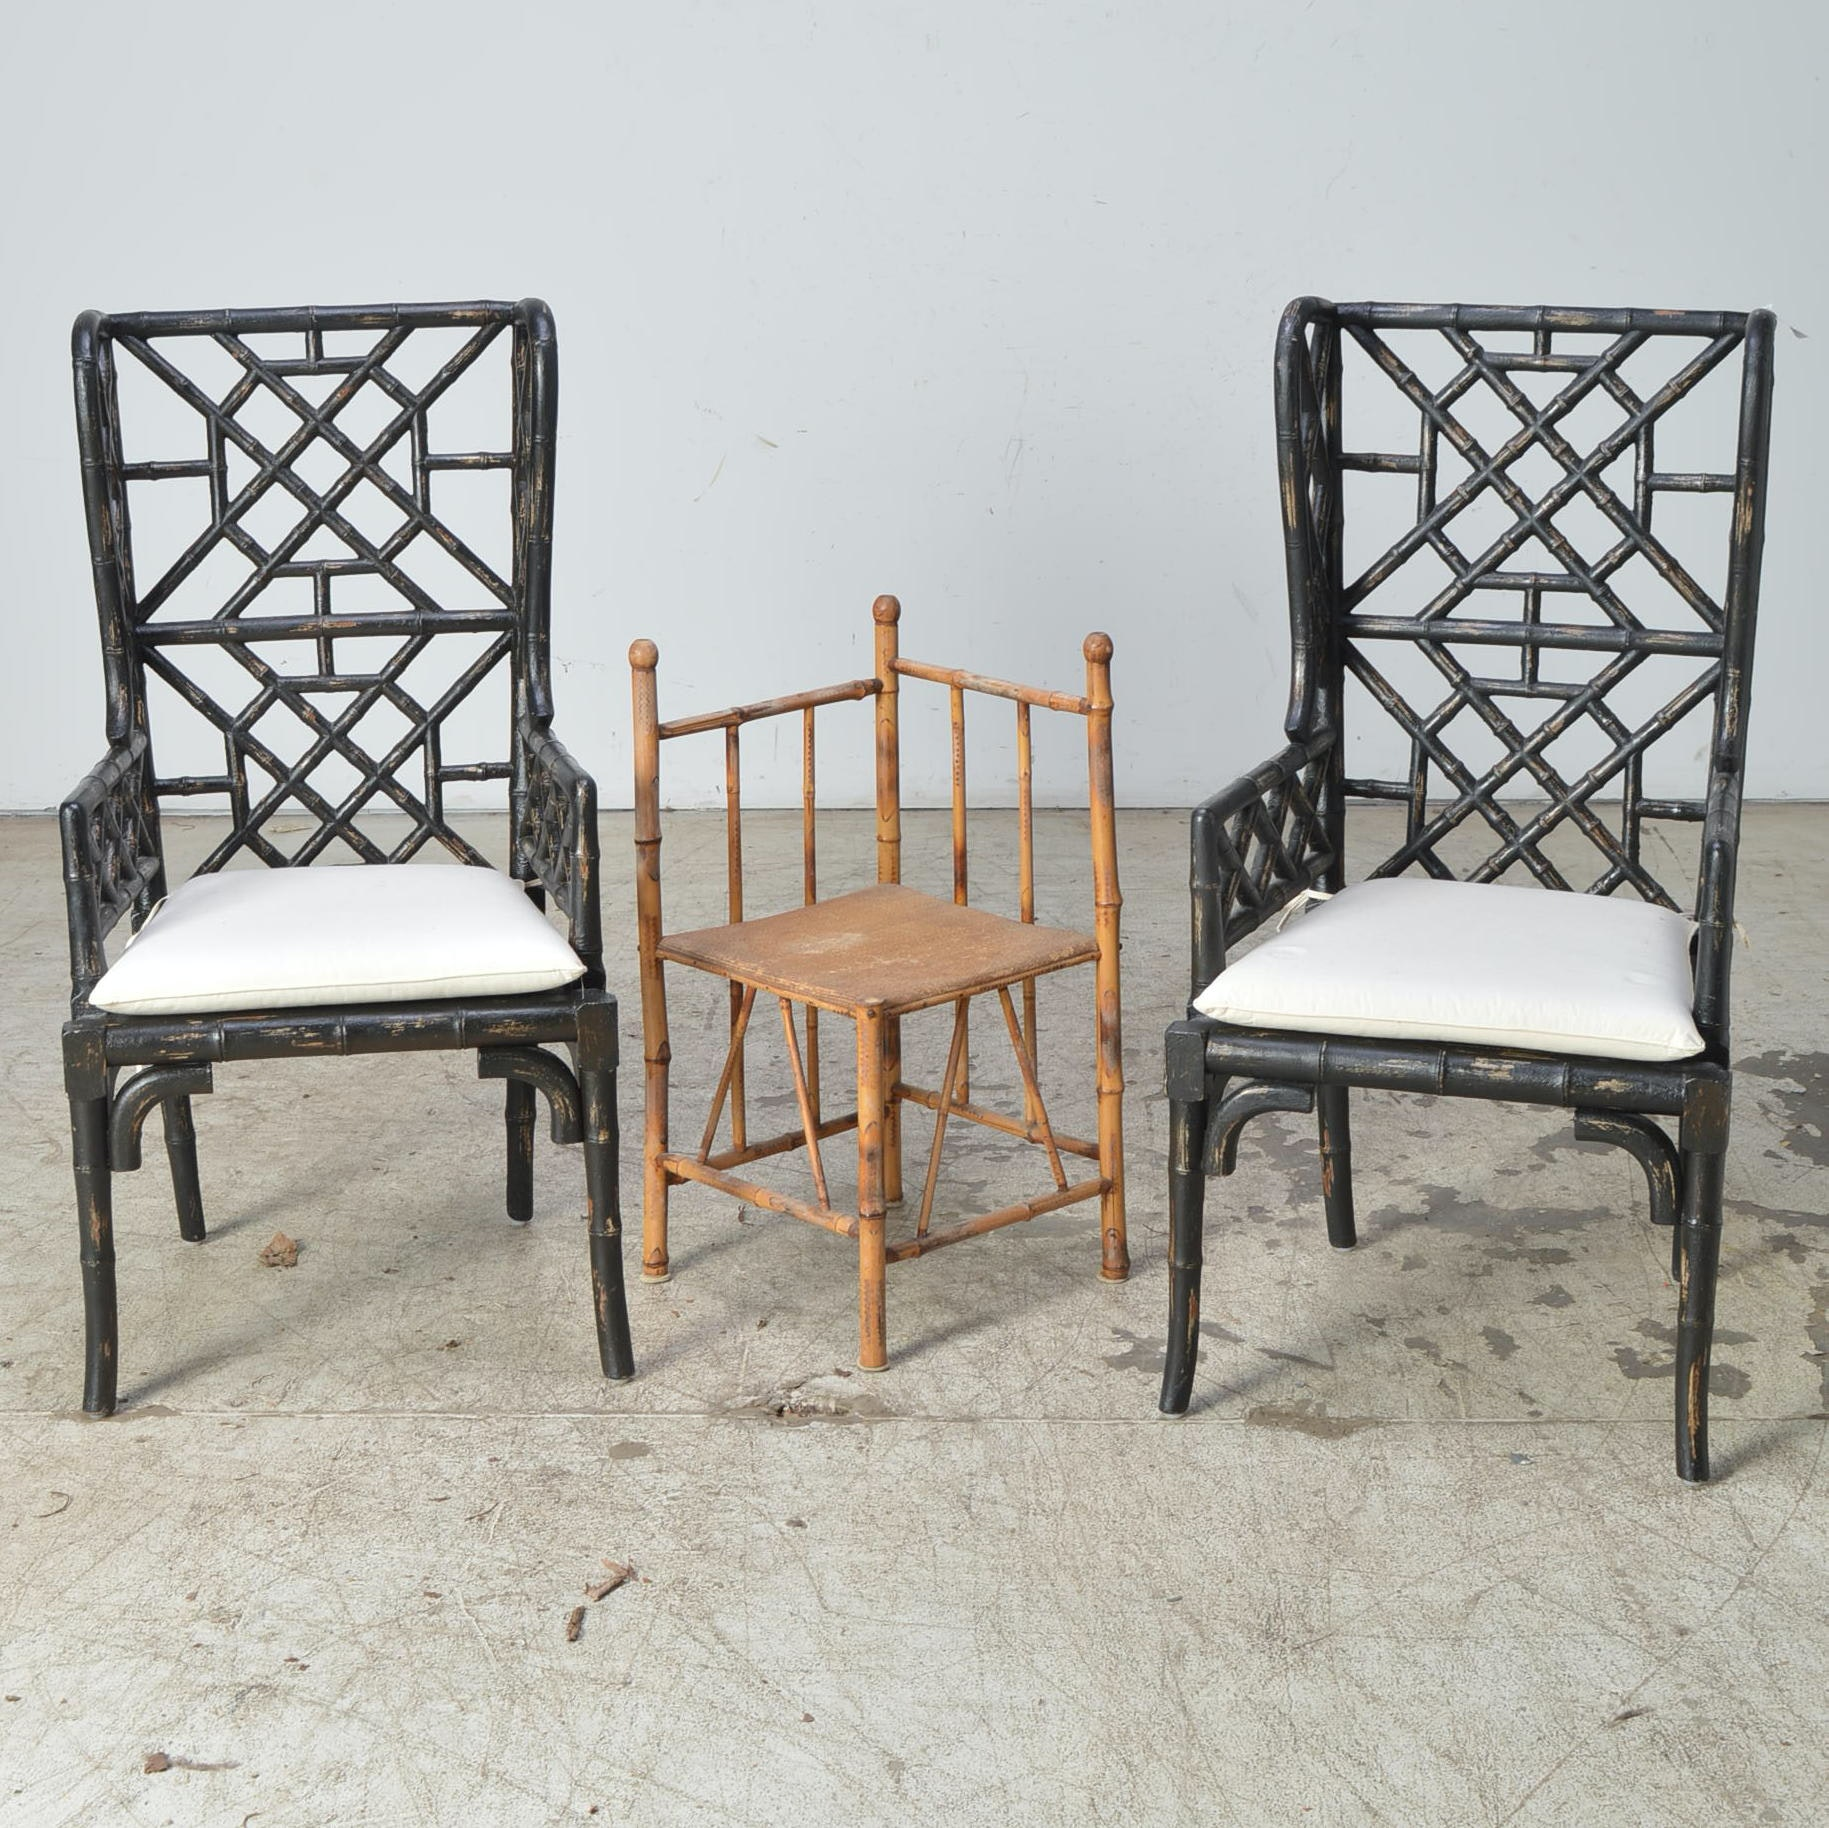 Wooden Bamboo-Style Chairs and Corner Table